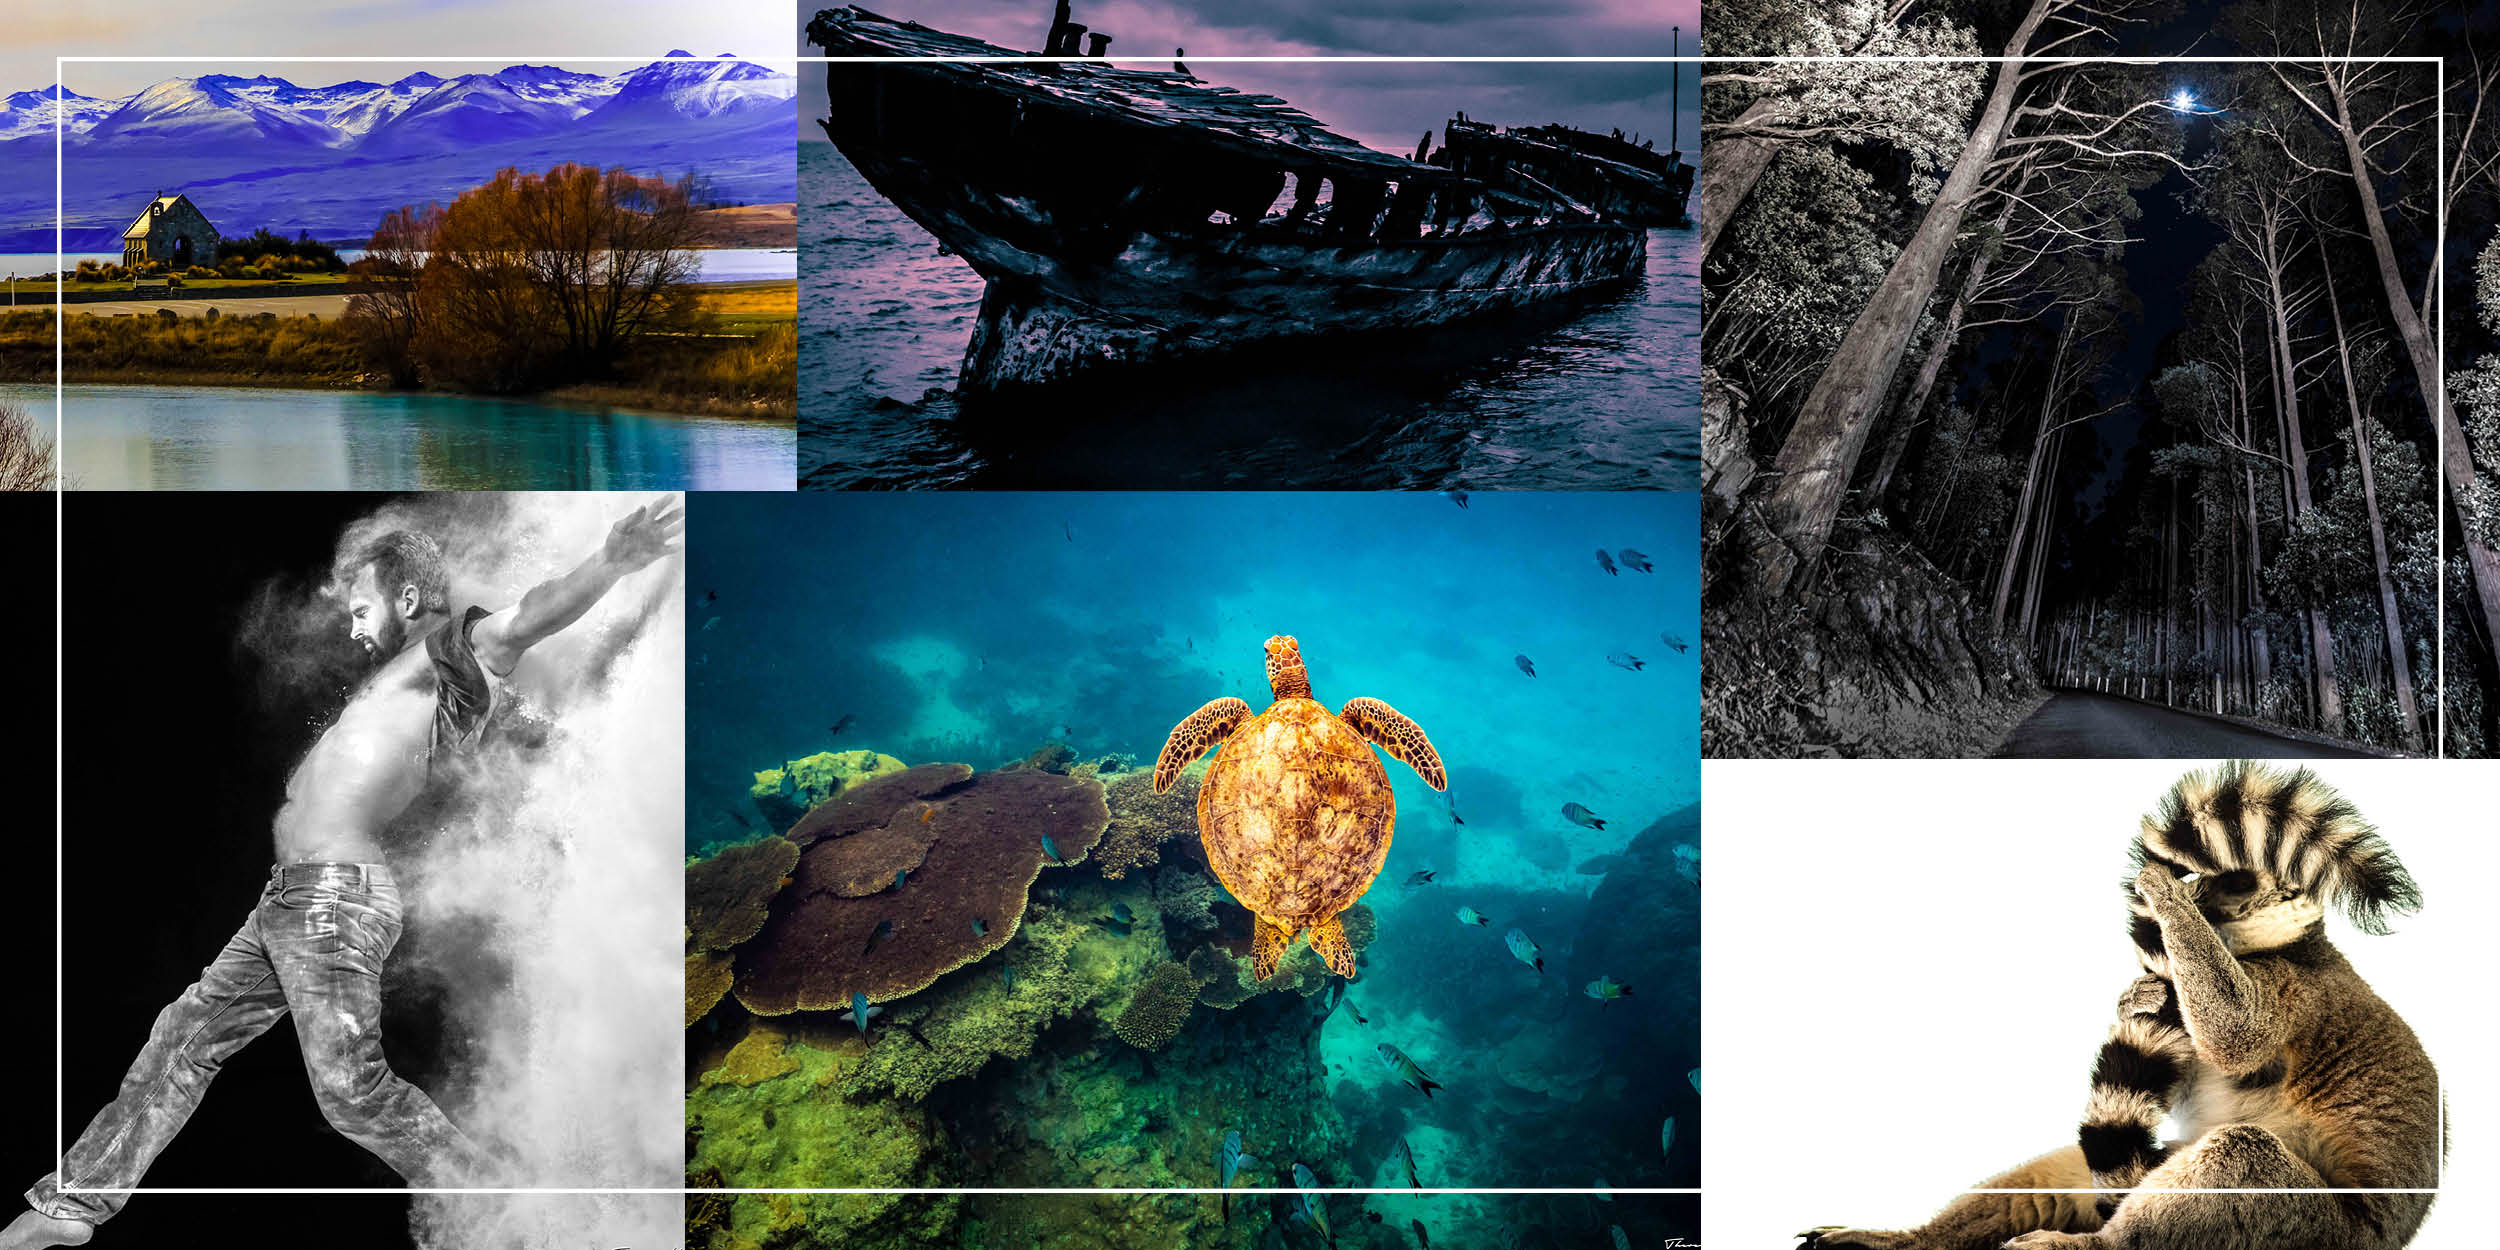 Various images: Lake Tekapo, man stepping forward with smoke behind, turtle, abandoned shipwreck, forest with moon, ring-tail lemur